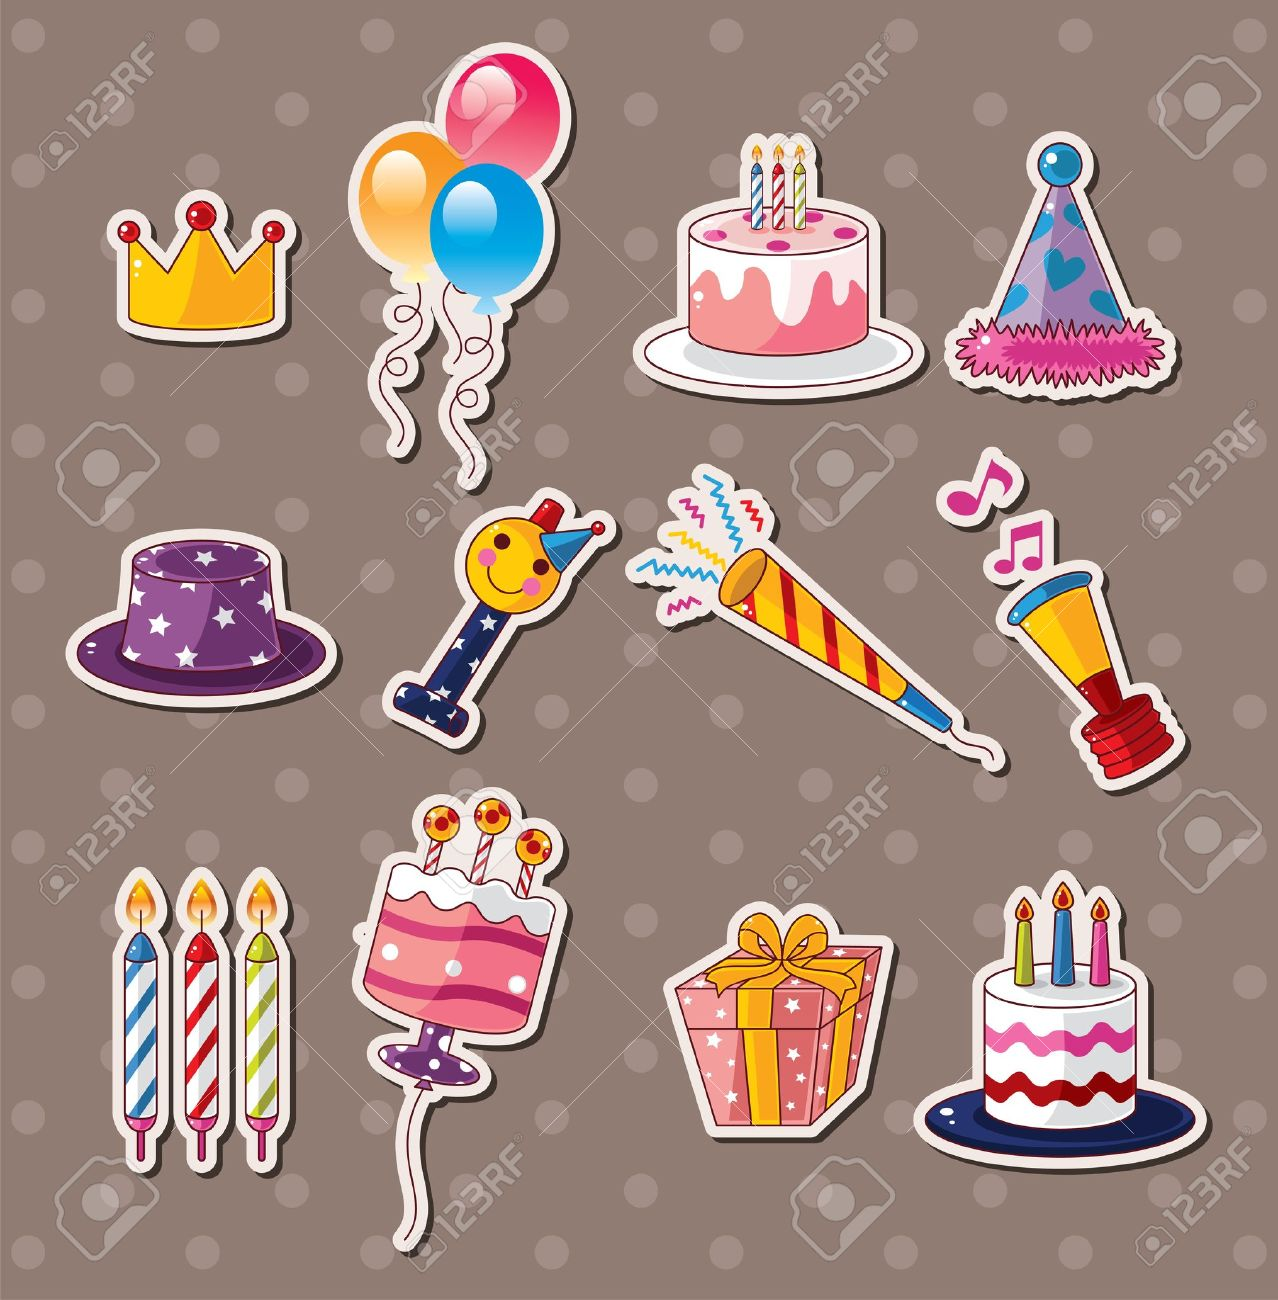 birthday stickers for pictures ; 15325008-birthday-stickers